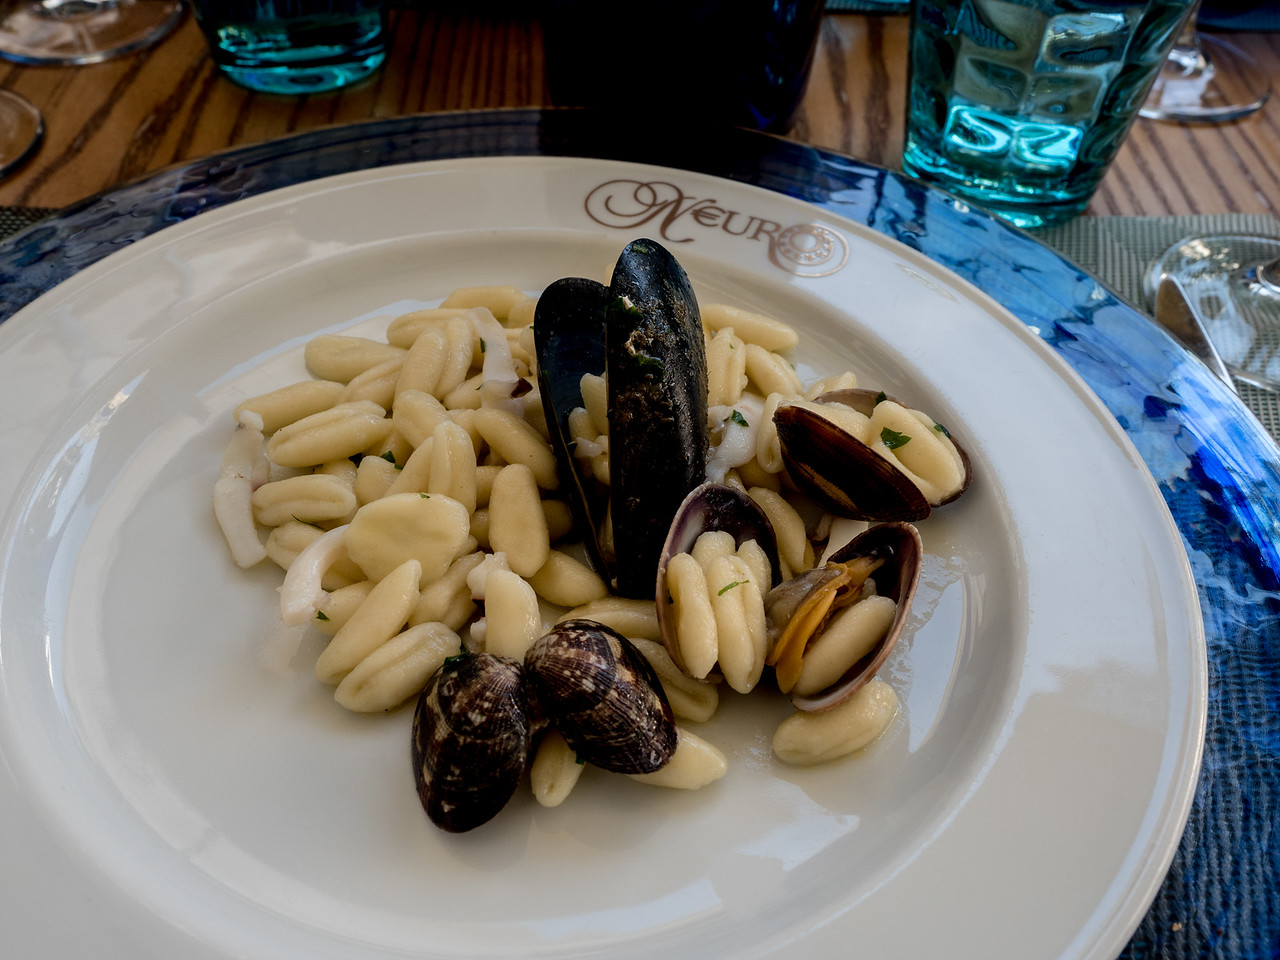 Pasta course, Lunch at Polignanho di Mare